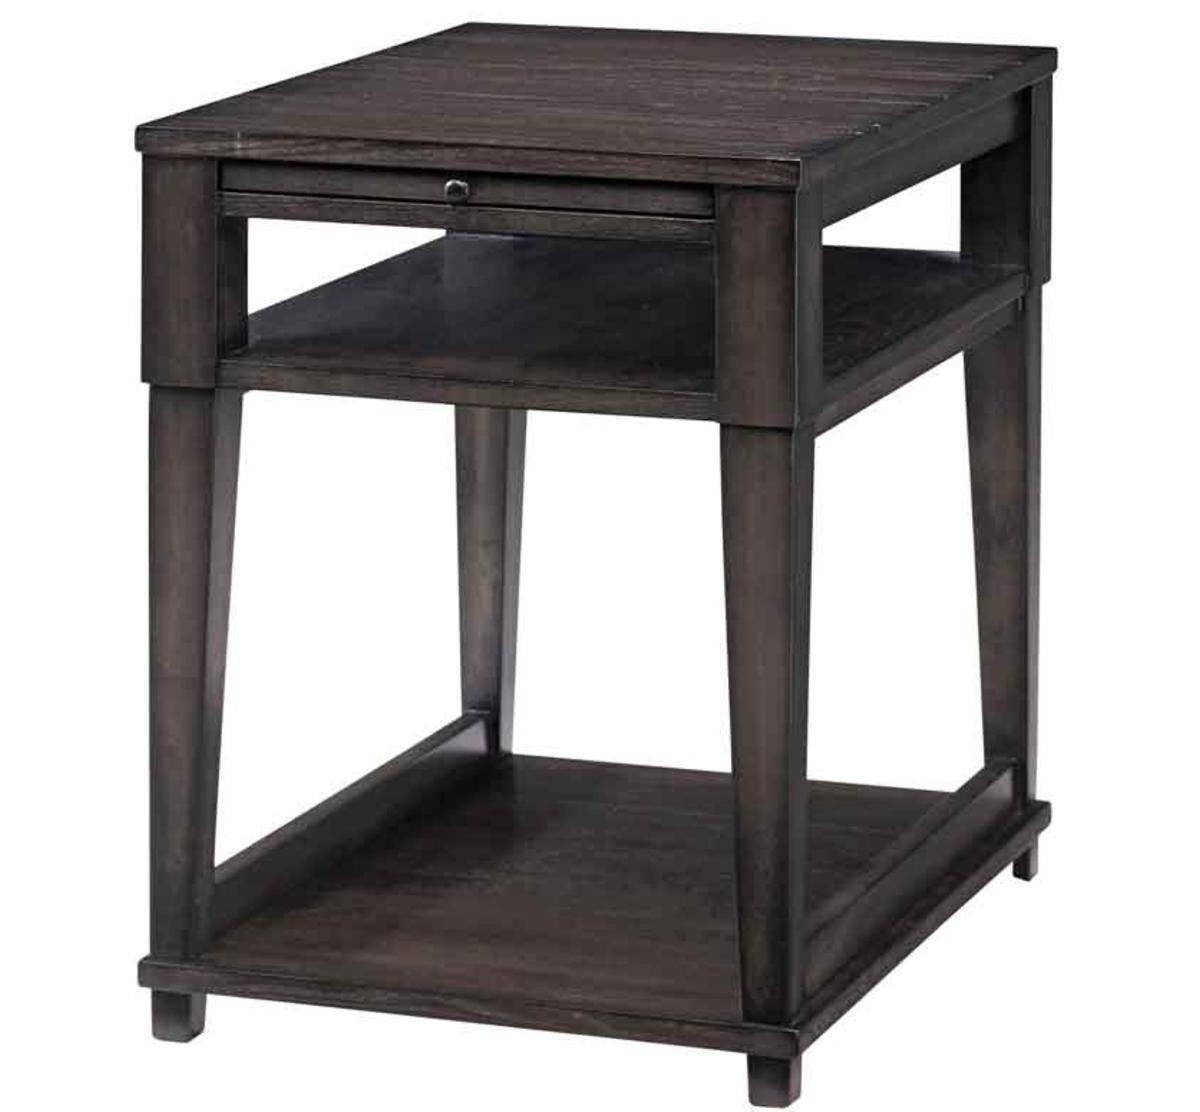 Picture of GRADY CHAIRSIDE TABLE